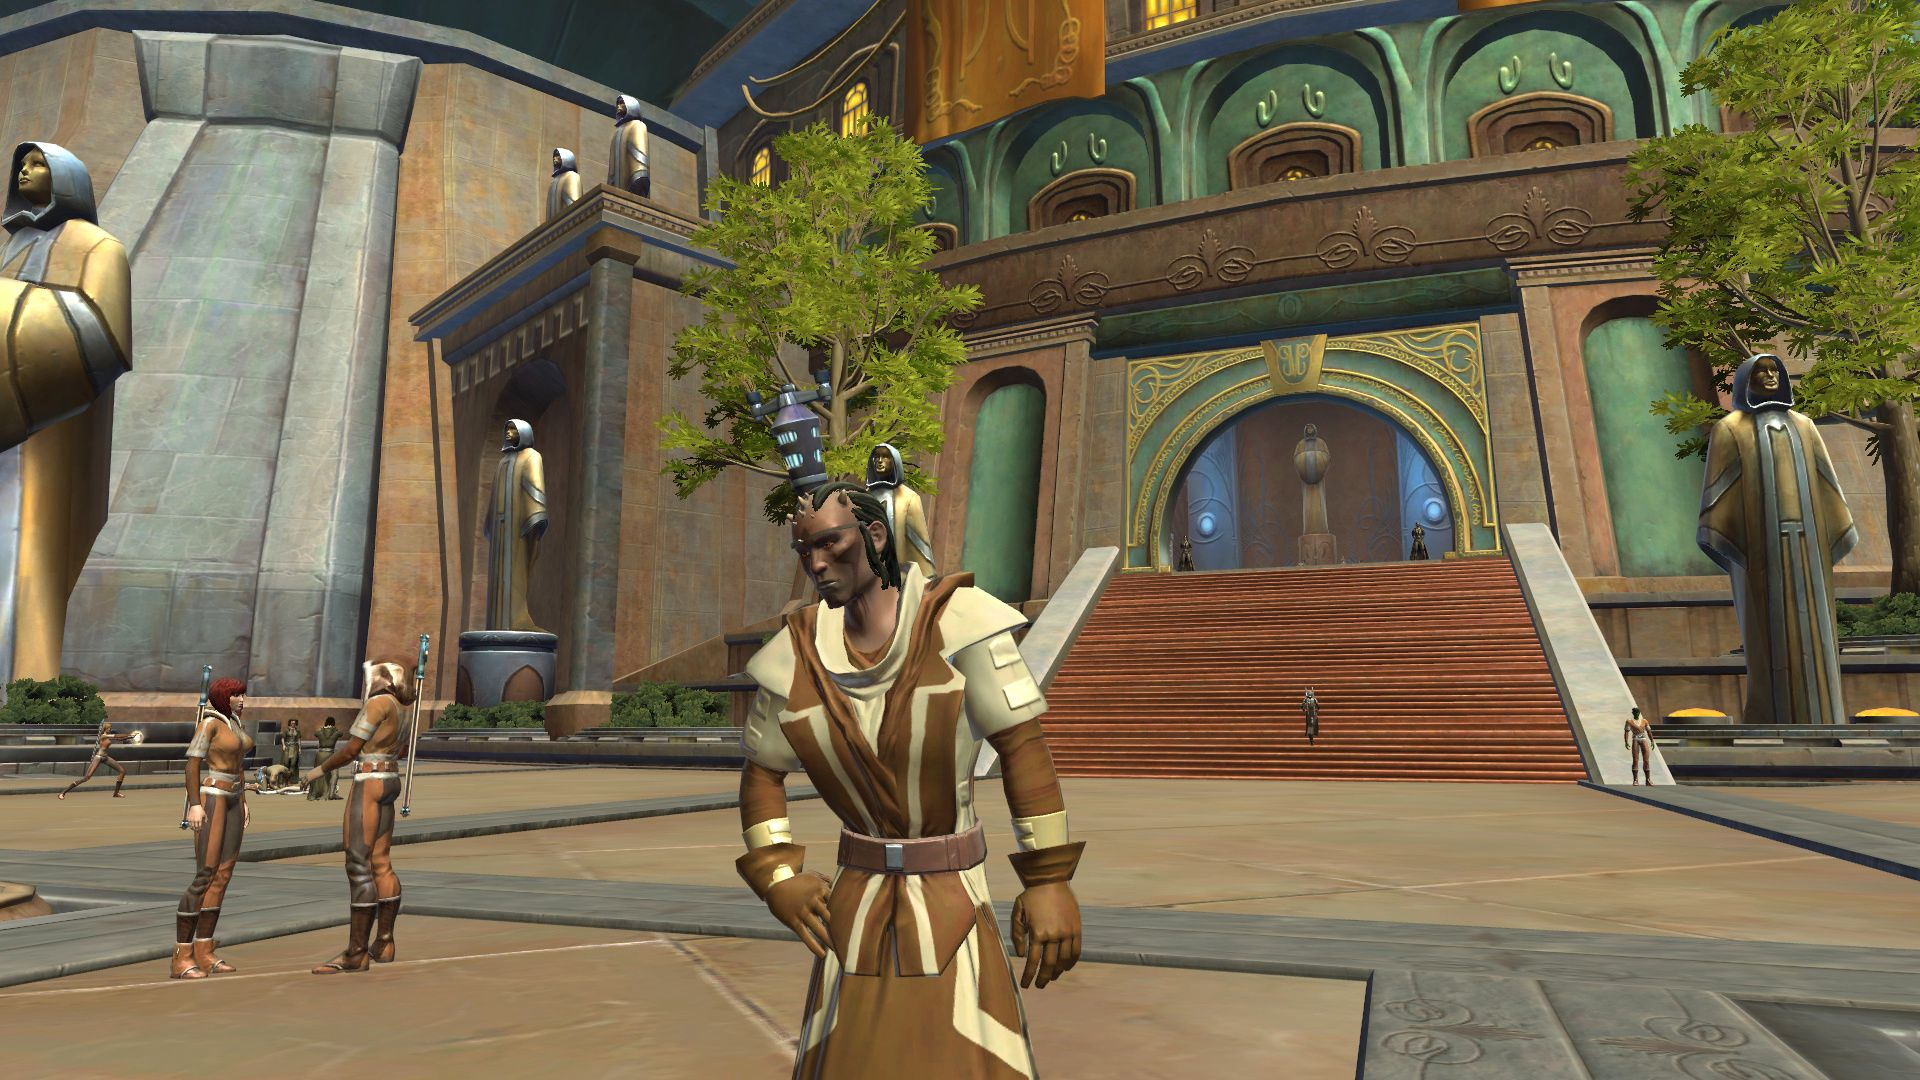 SWTOR Free-to-Play Review Guide - Start Playing SWTOR for Free!